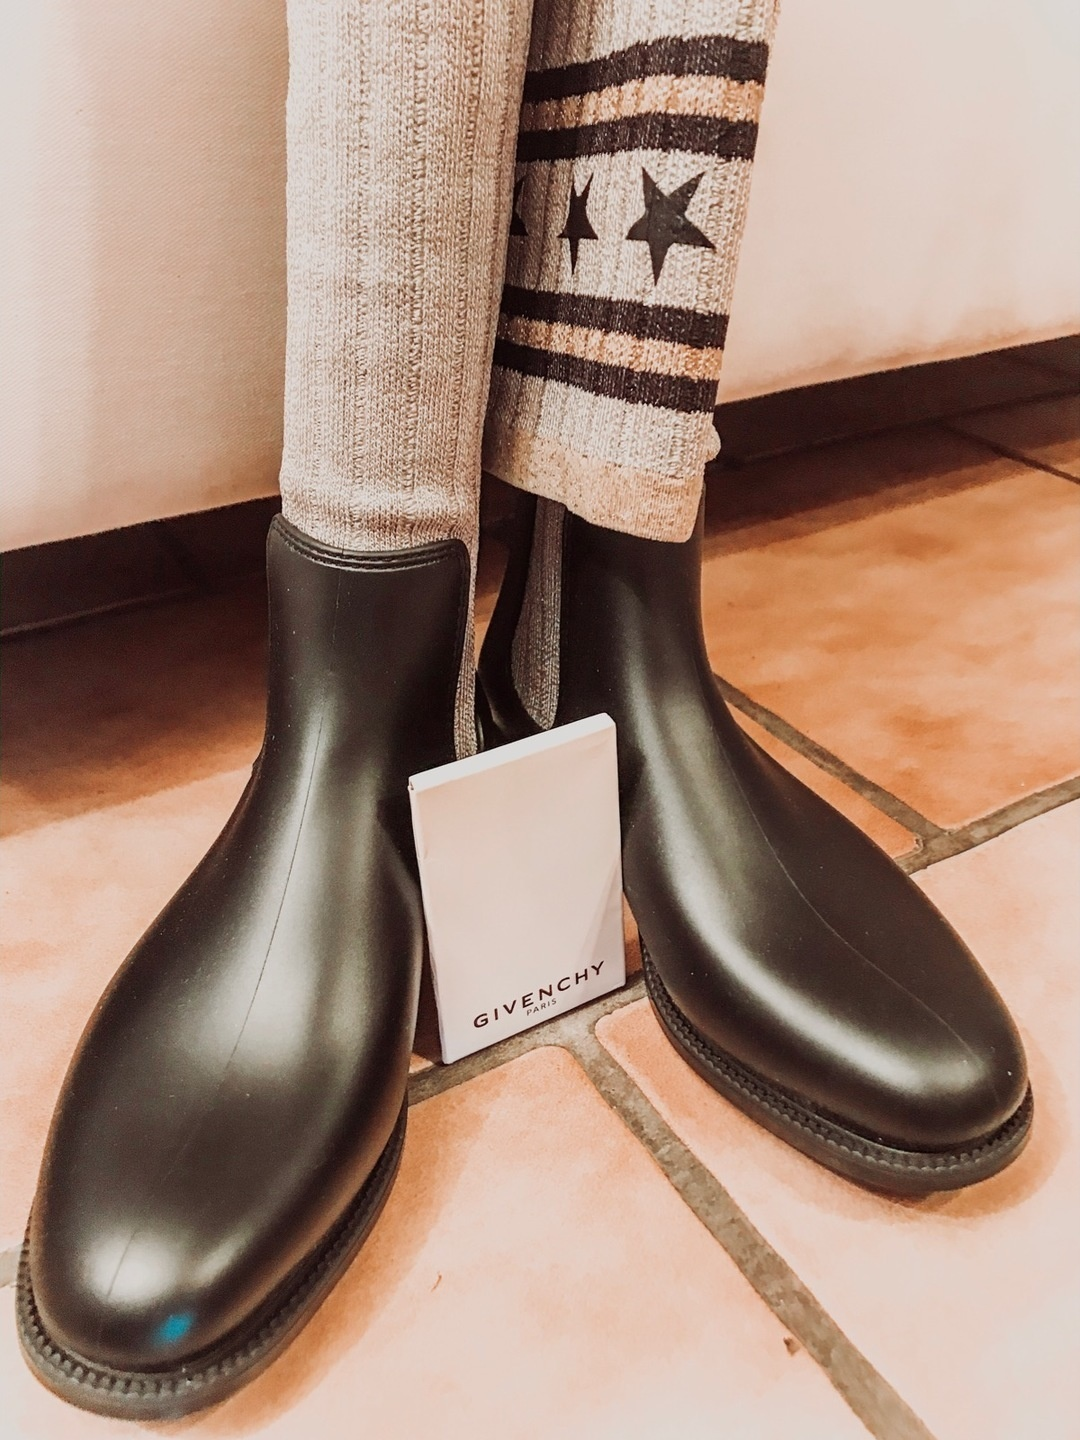 Women's boots - GIVENCHY photo 1